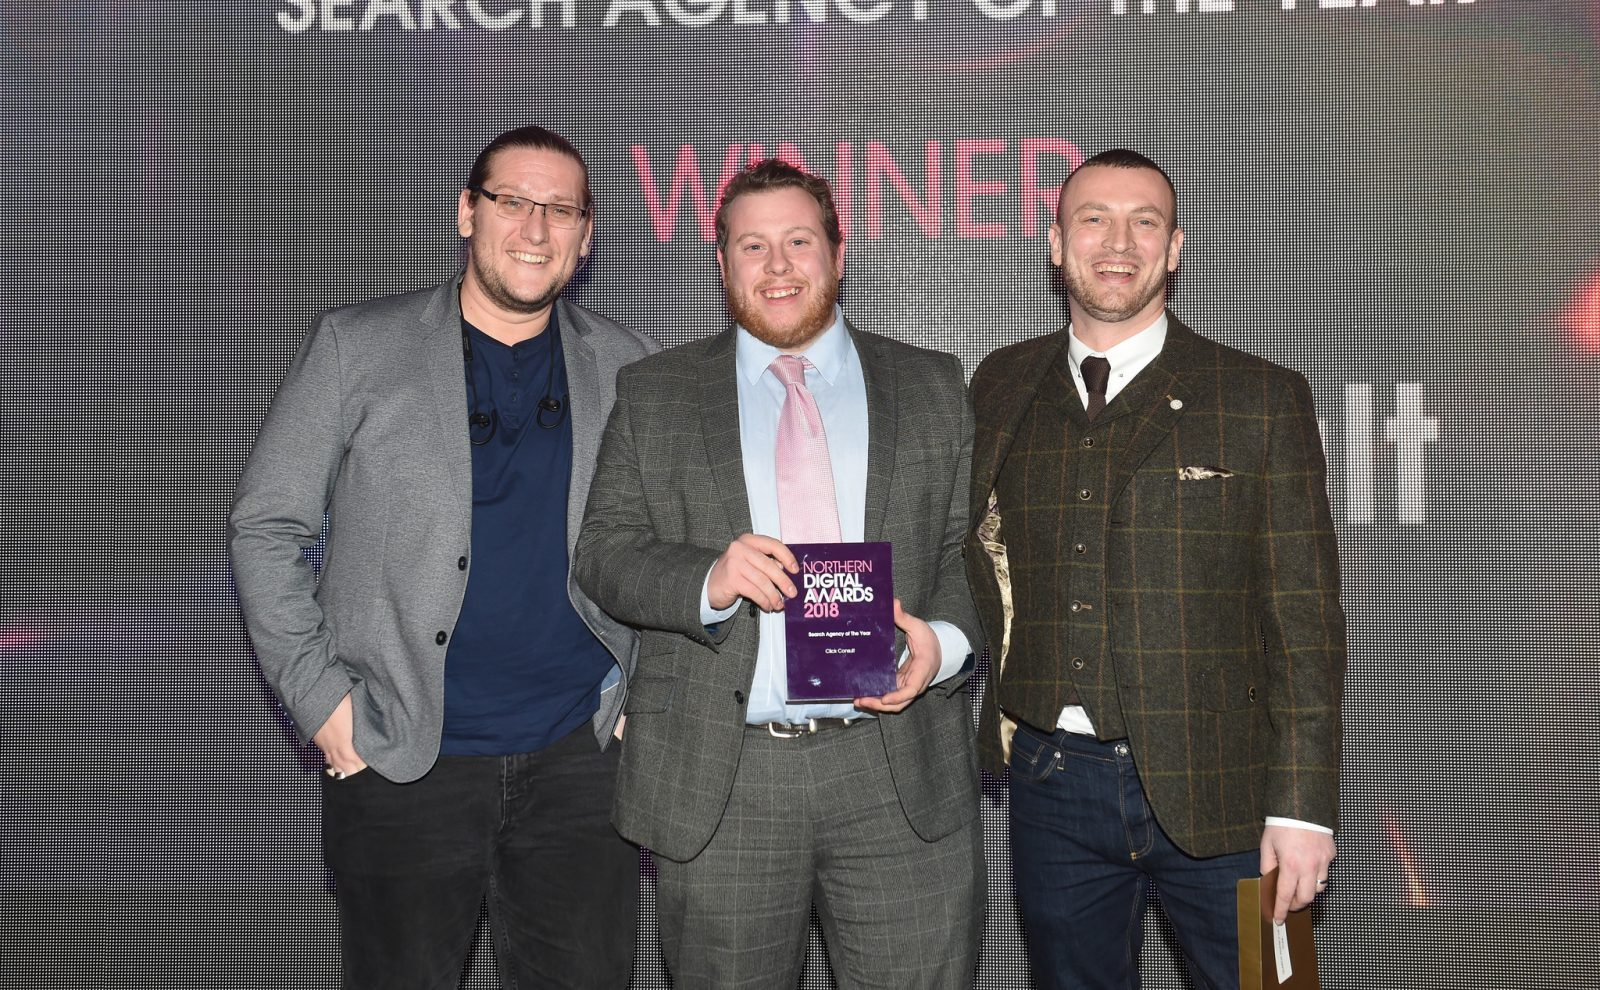 search agency of the year